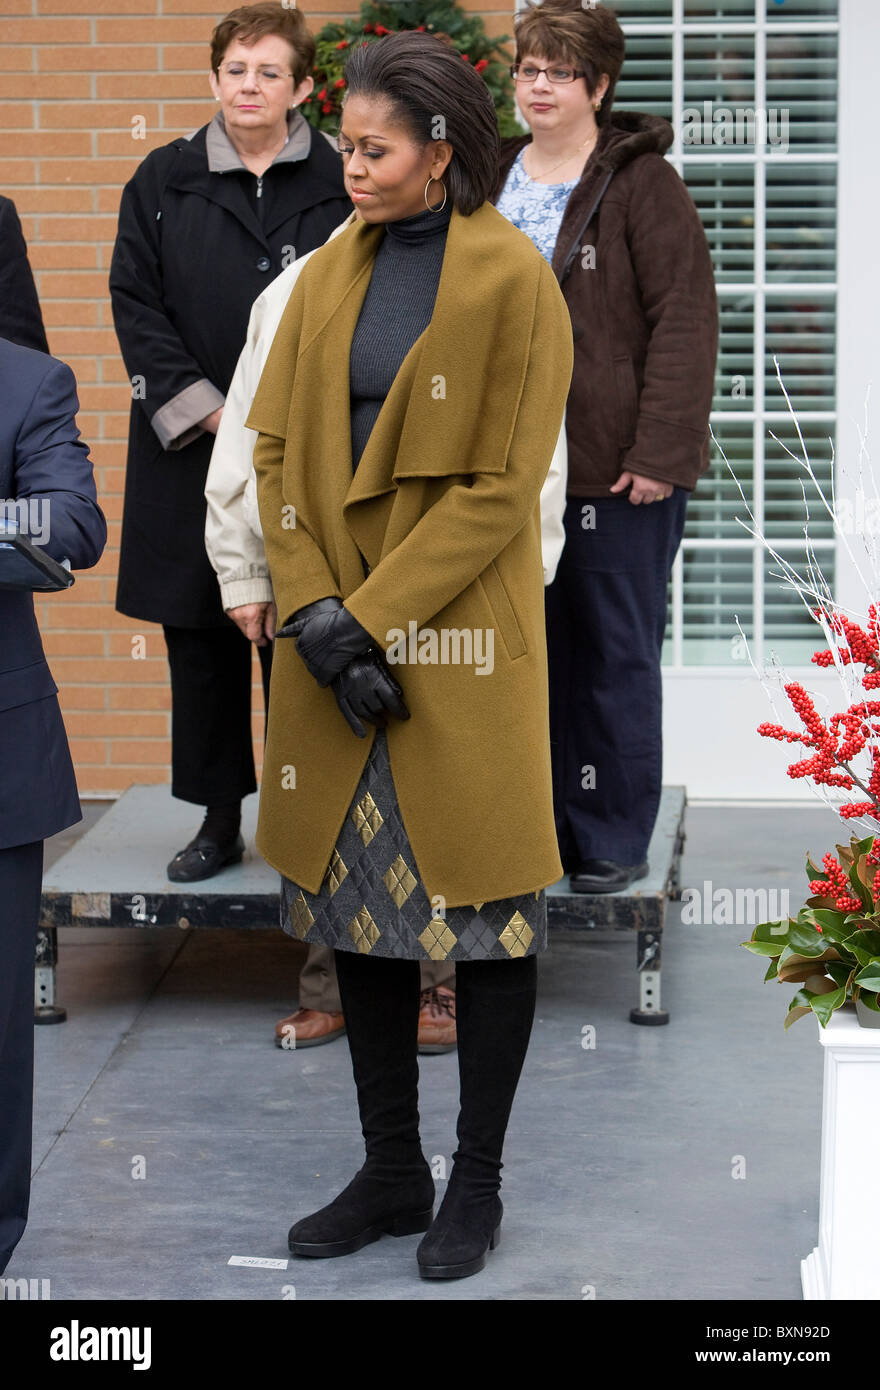 First Lady Michelle Obama.  - Stock Image